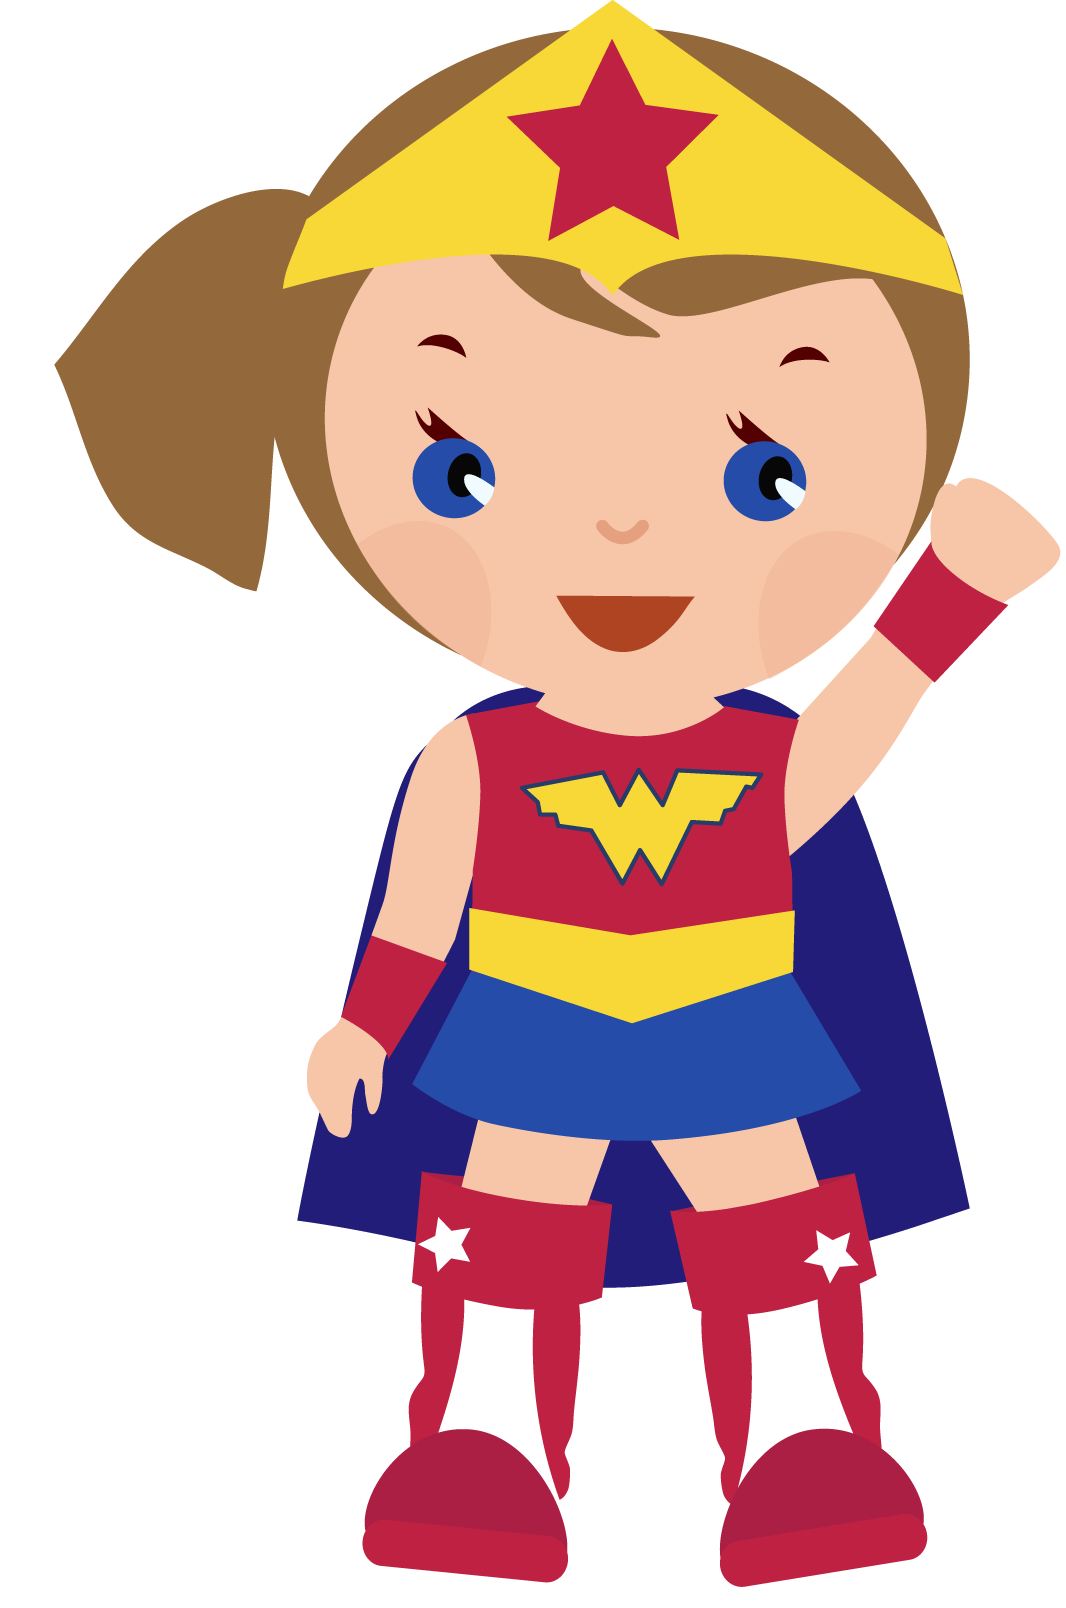 Woman clipart kid Cute Wonder kid woman clipart